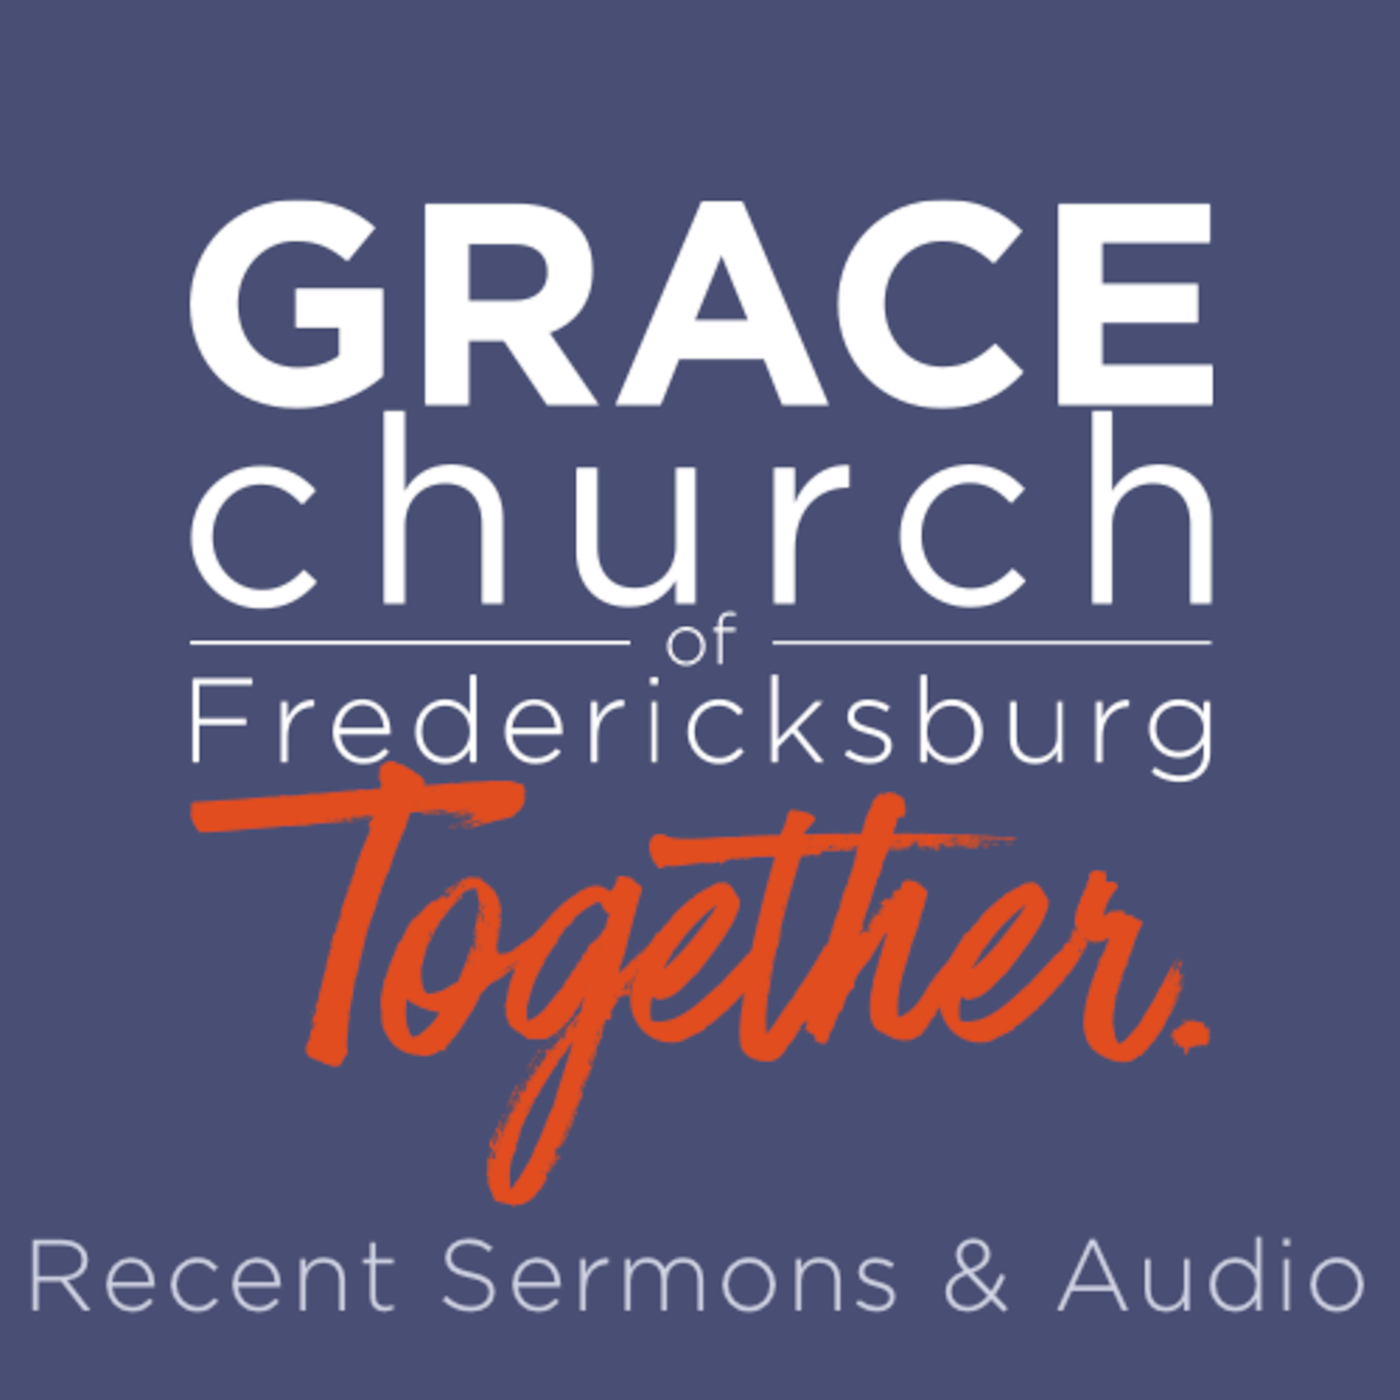 Grace Church of Fredericksburg Podcast show art